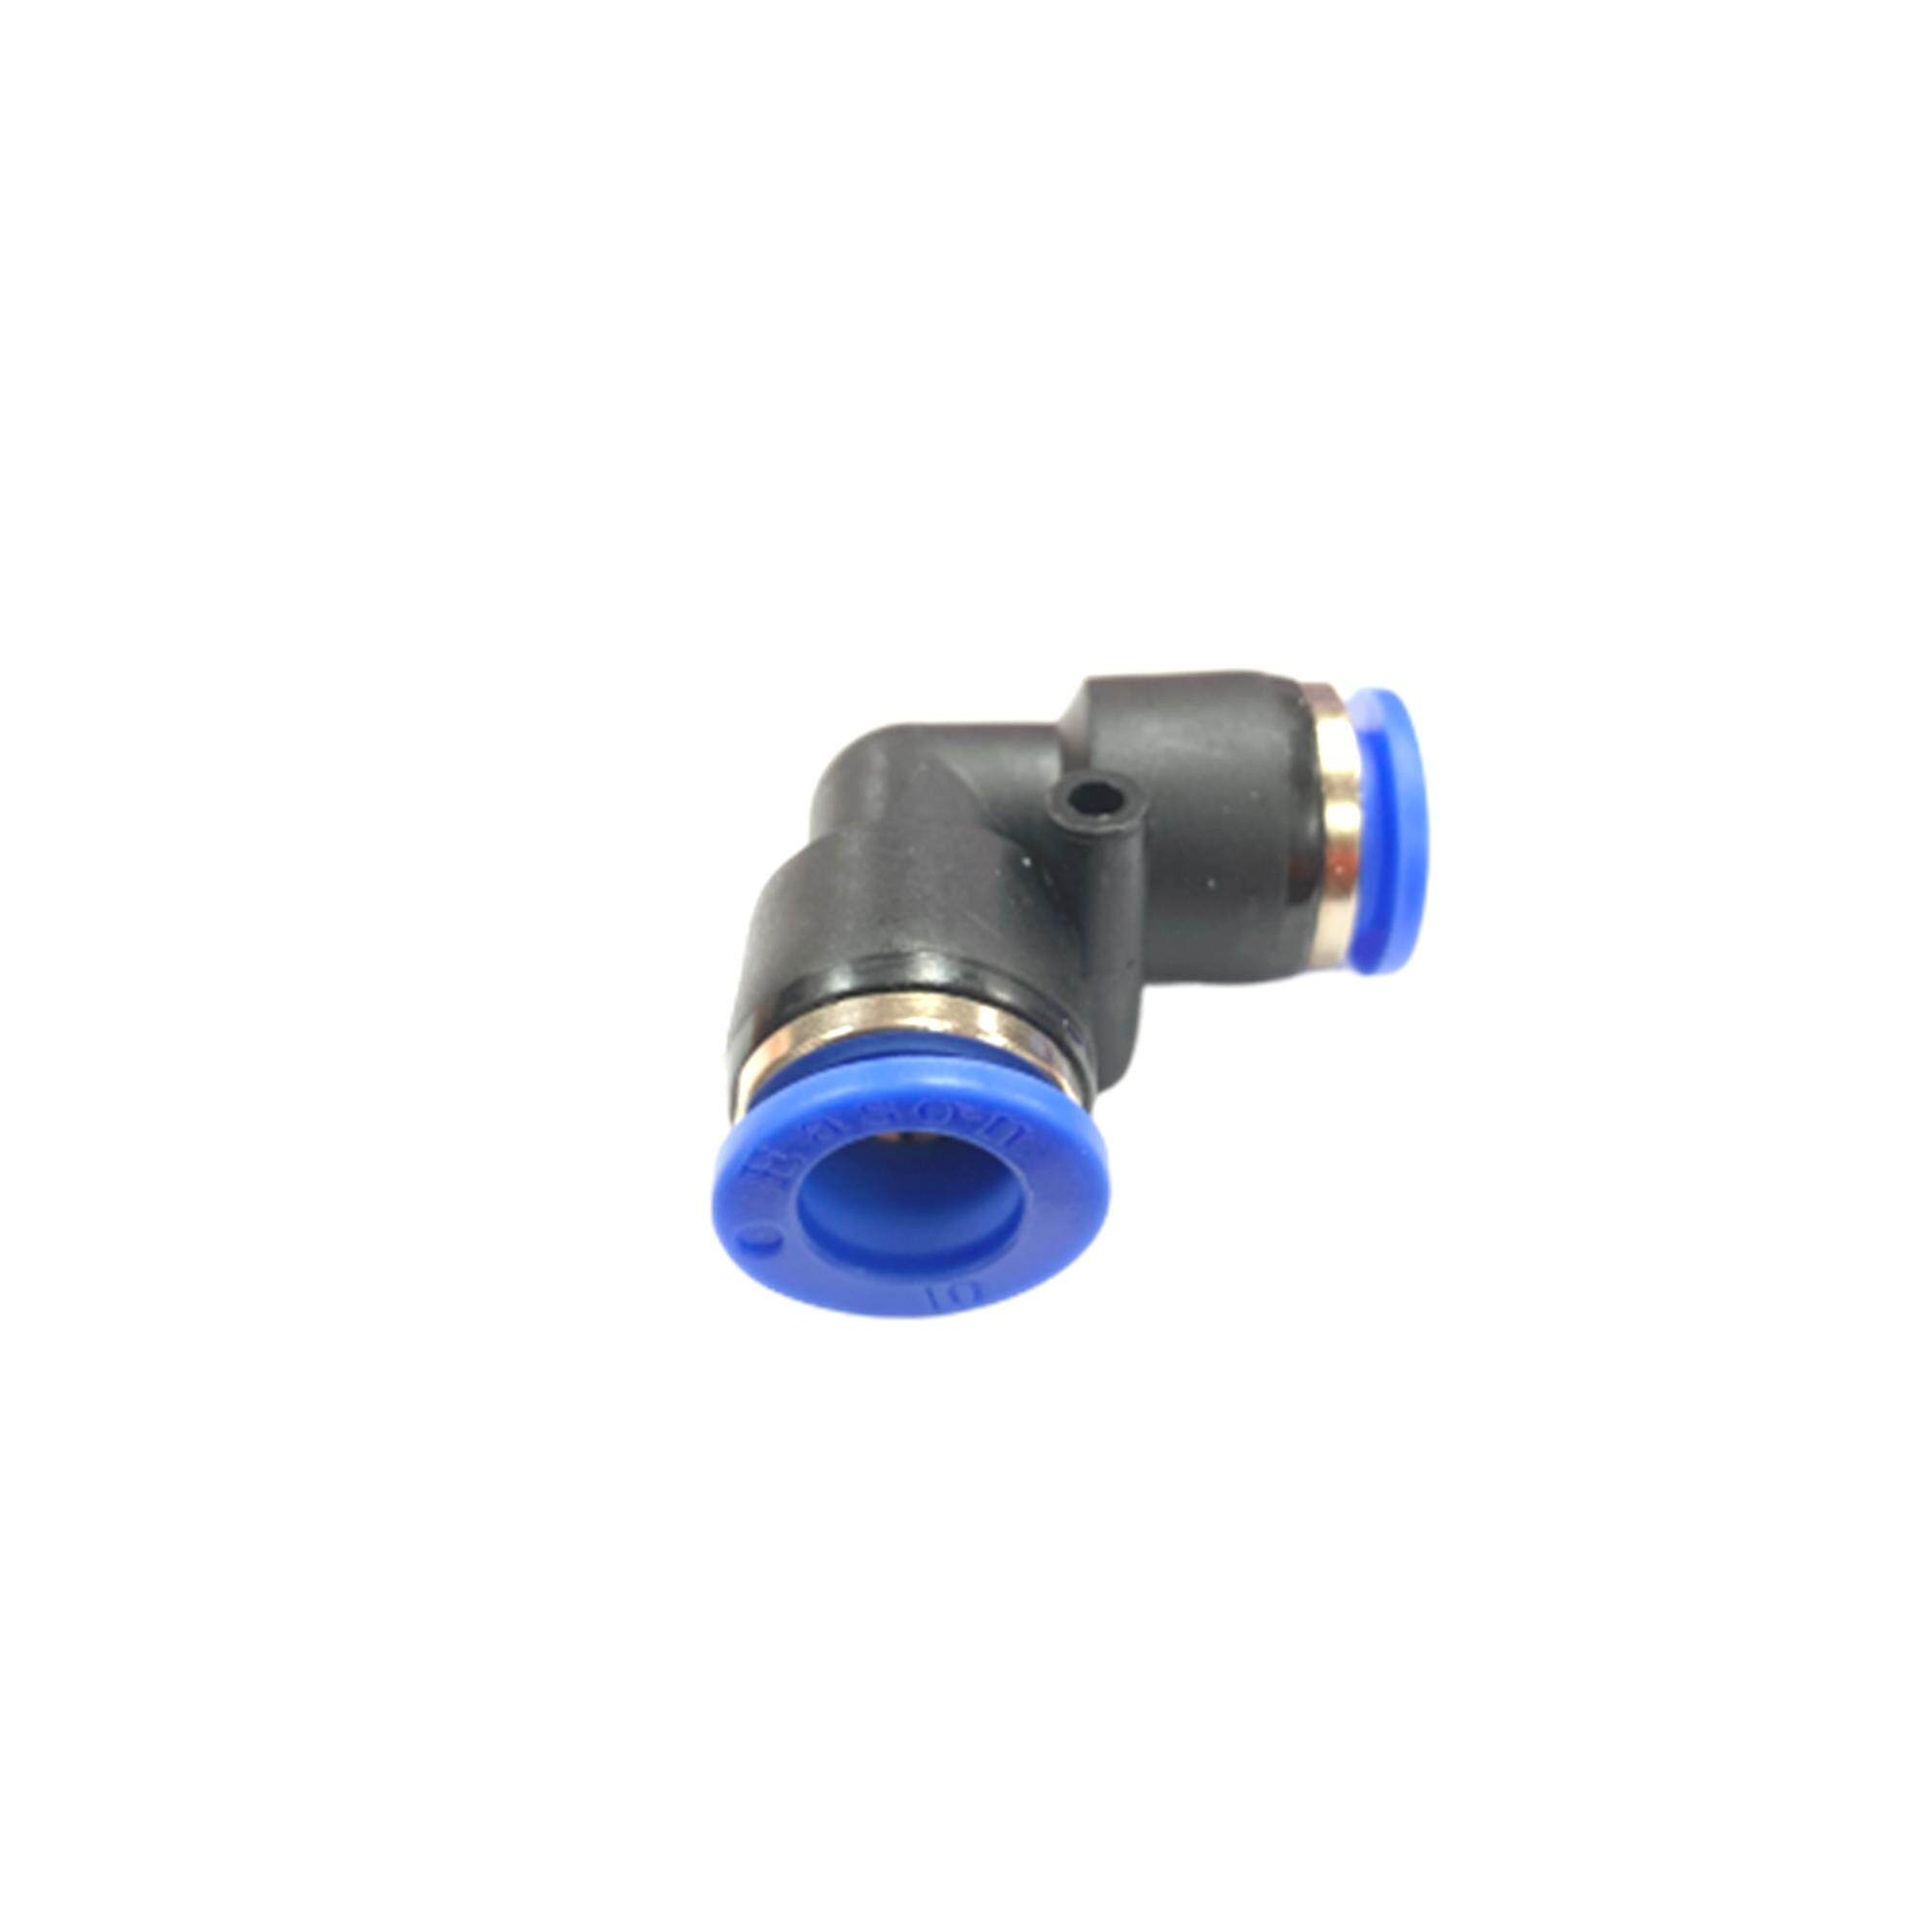 Pv10 10mm Elbow Connector Pneumatic Air Push In Quick Fittings By Hong Sheng Store.